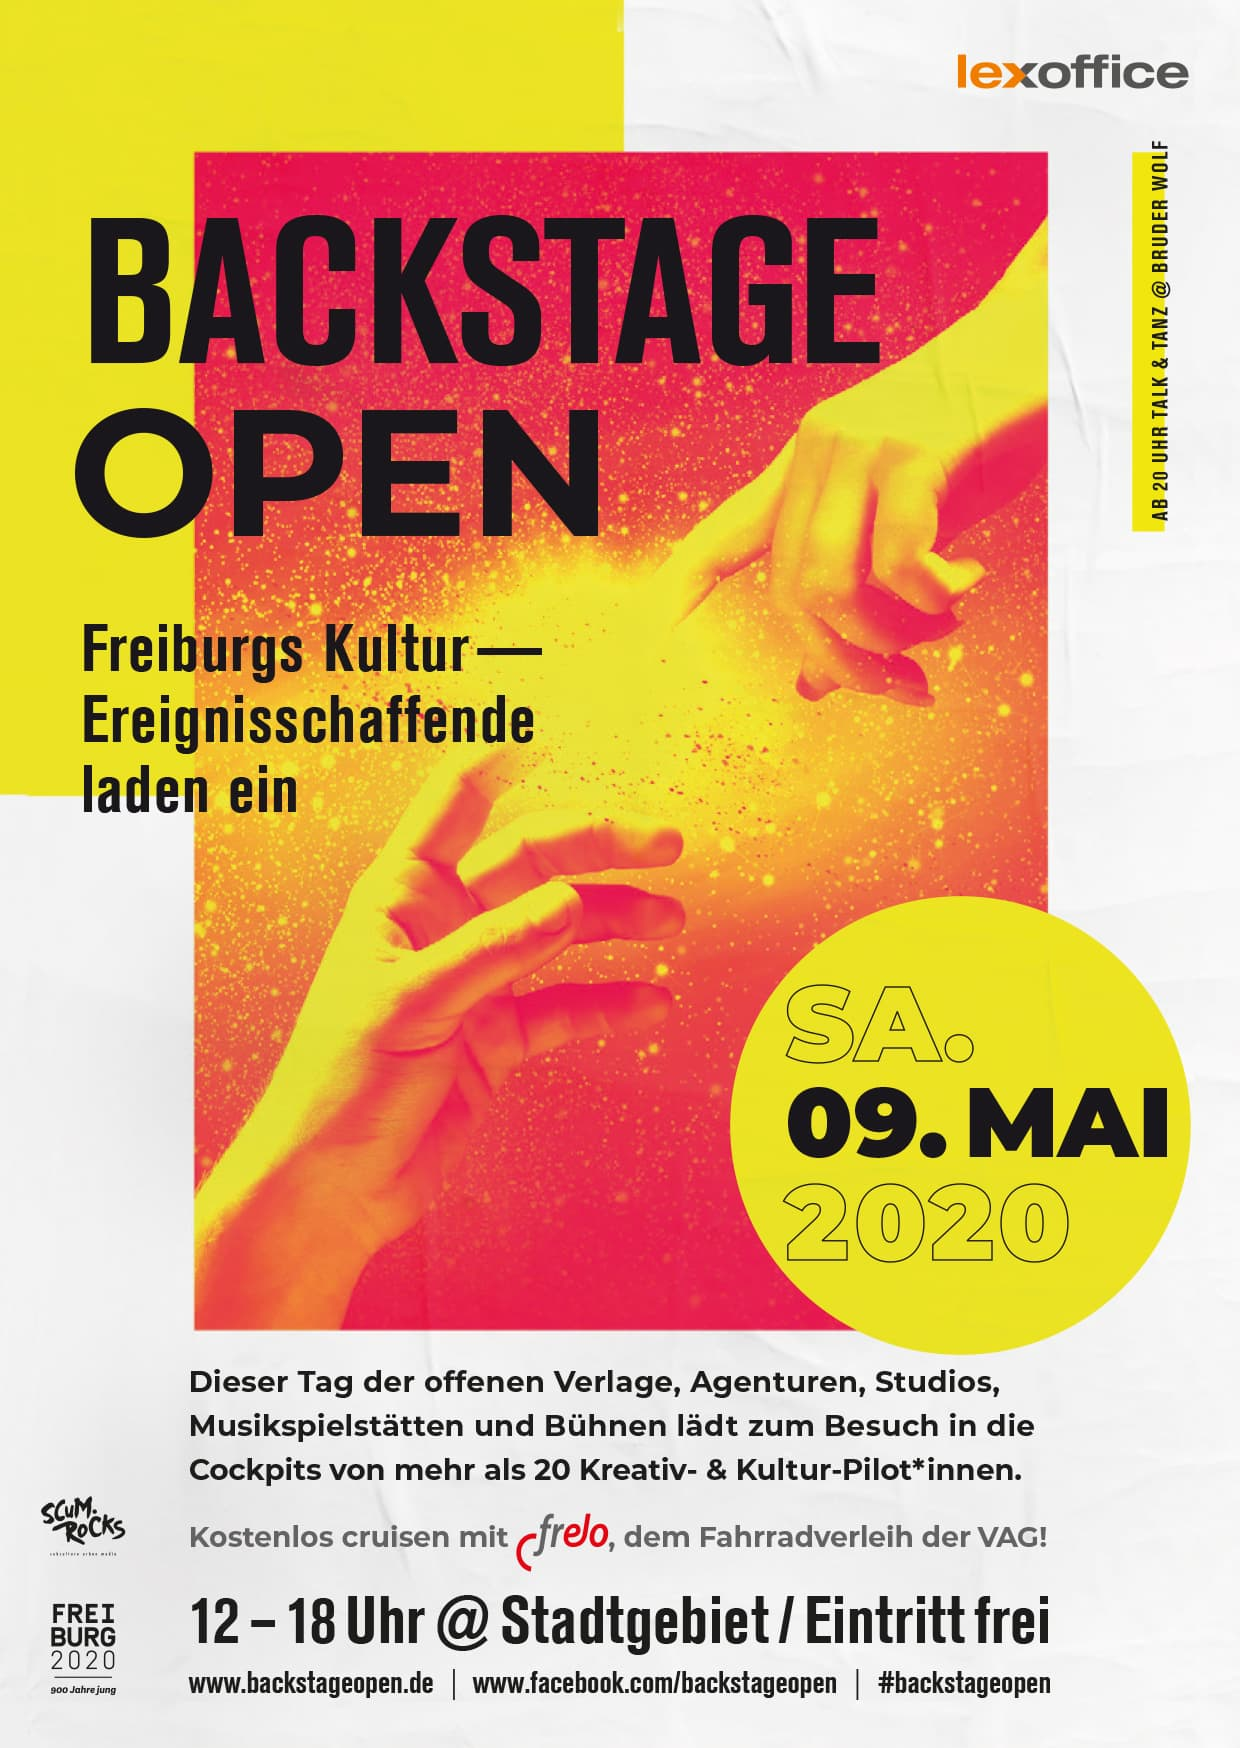 Backstage Open